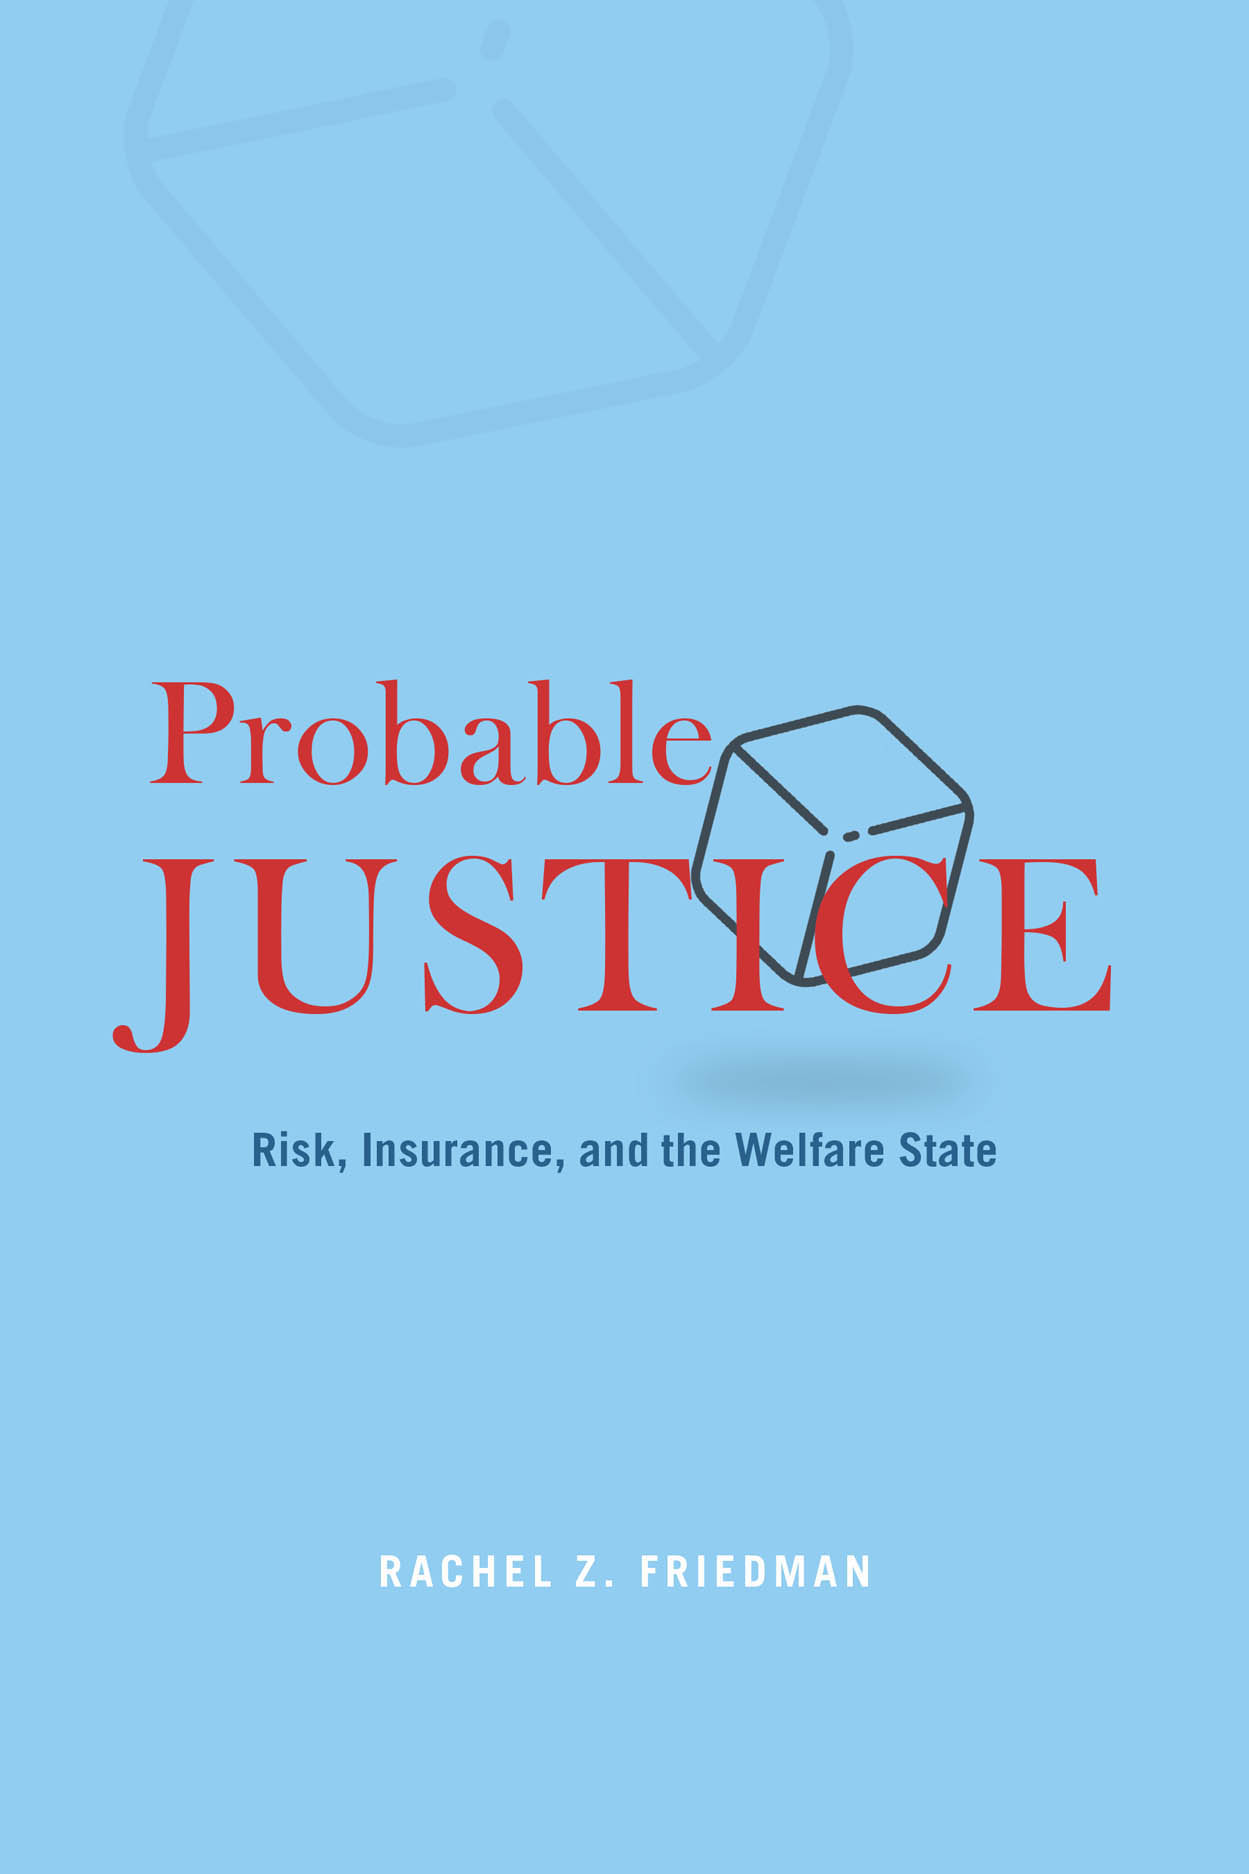 Probable Justice: Risk, Insurance, and the Welfare State